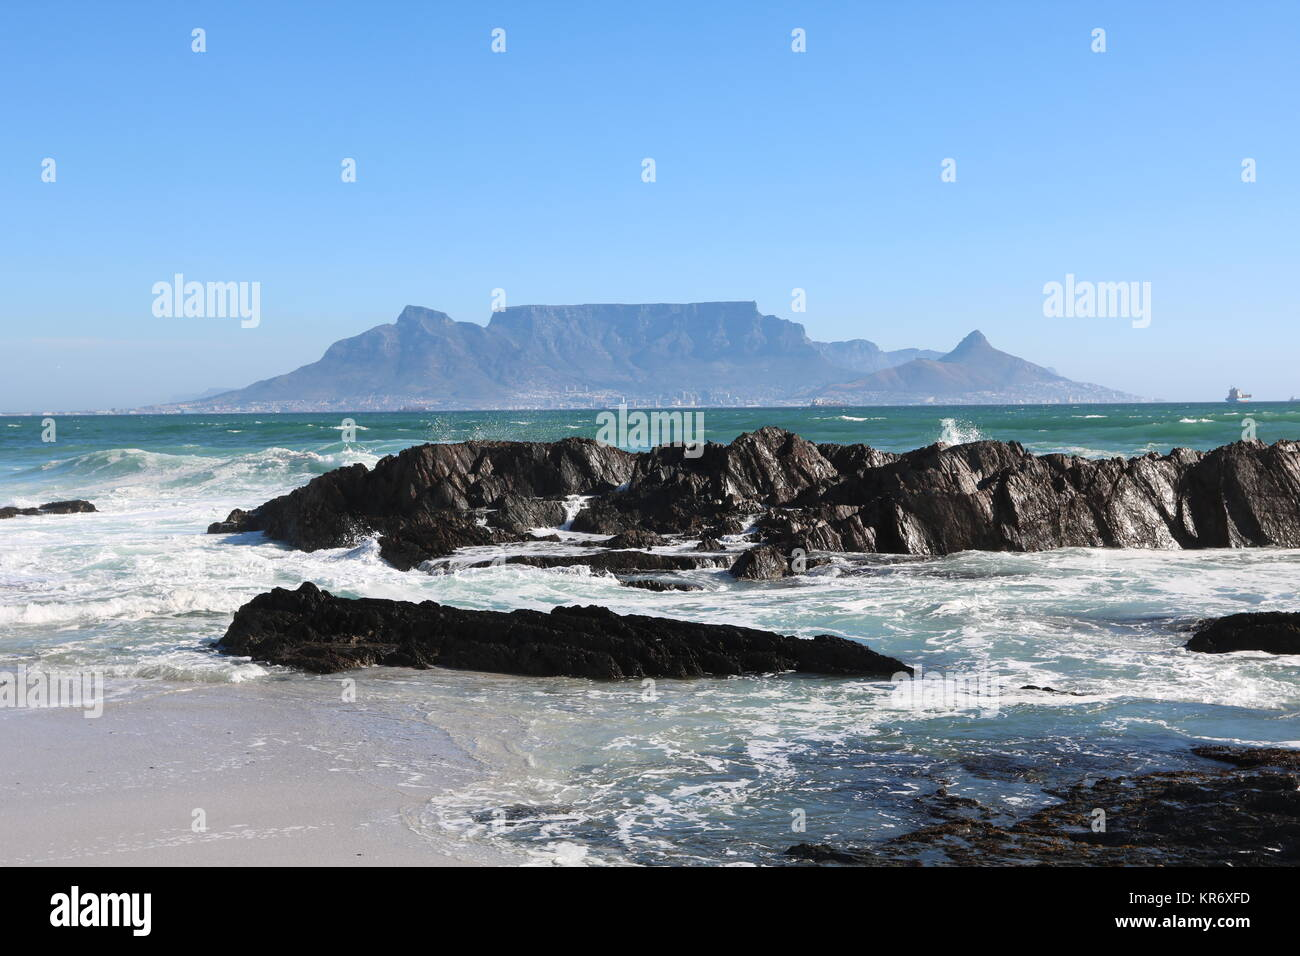 Cape Town South Africa - Stock Image